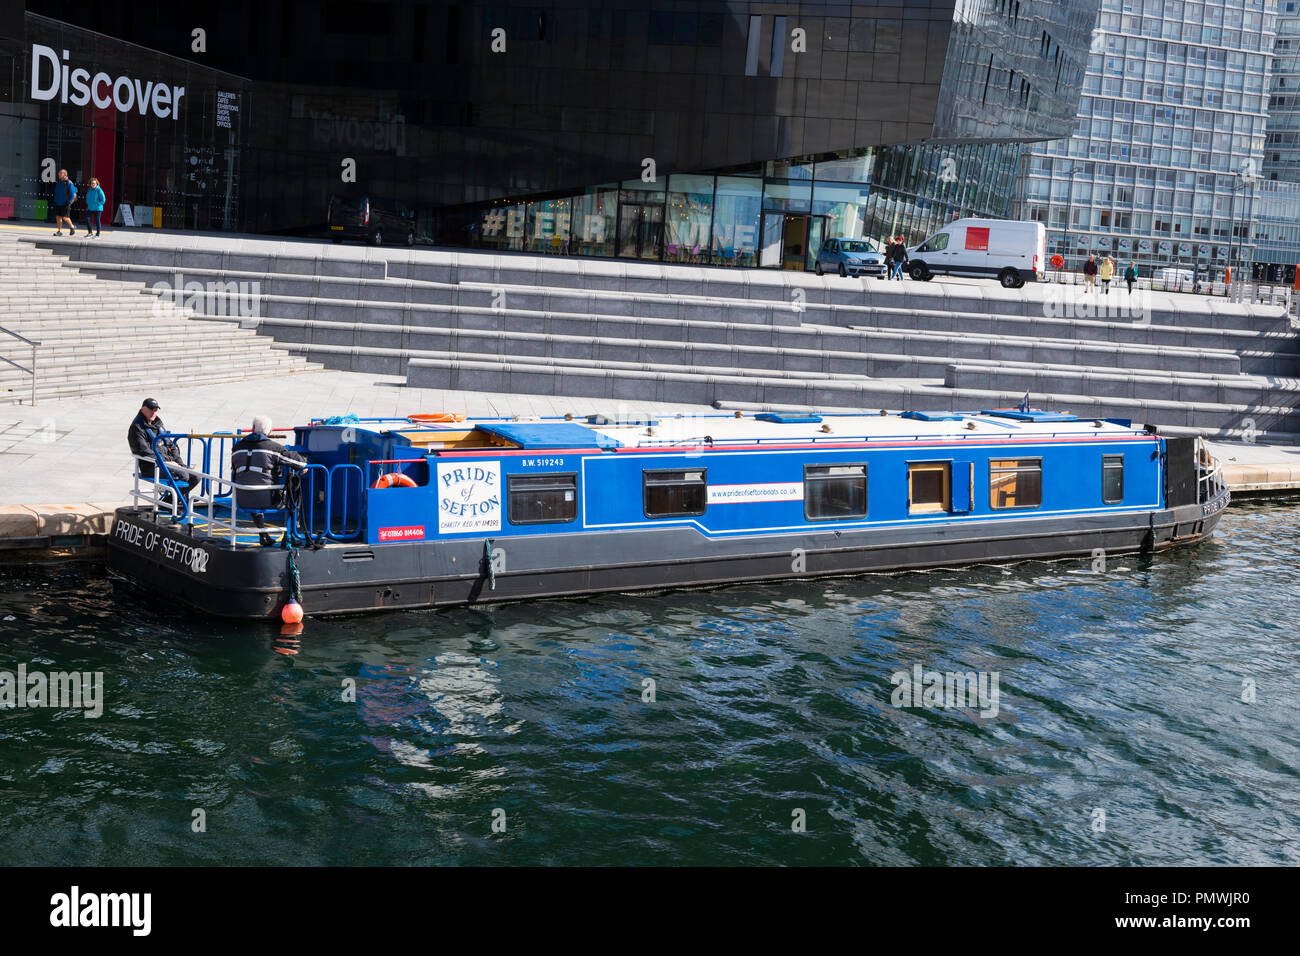 Liverpool Albert Dock area barge Pride of Sefton 2 moored Discover modern contemporary purpose built galleries exhibitions events cafes shops Brasco - Stock Image